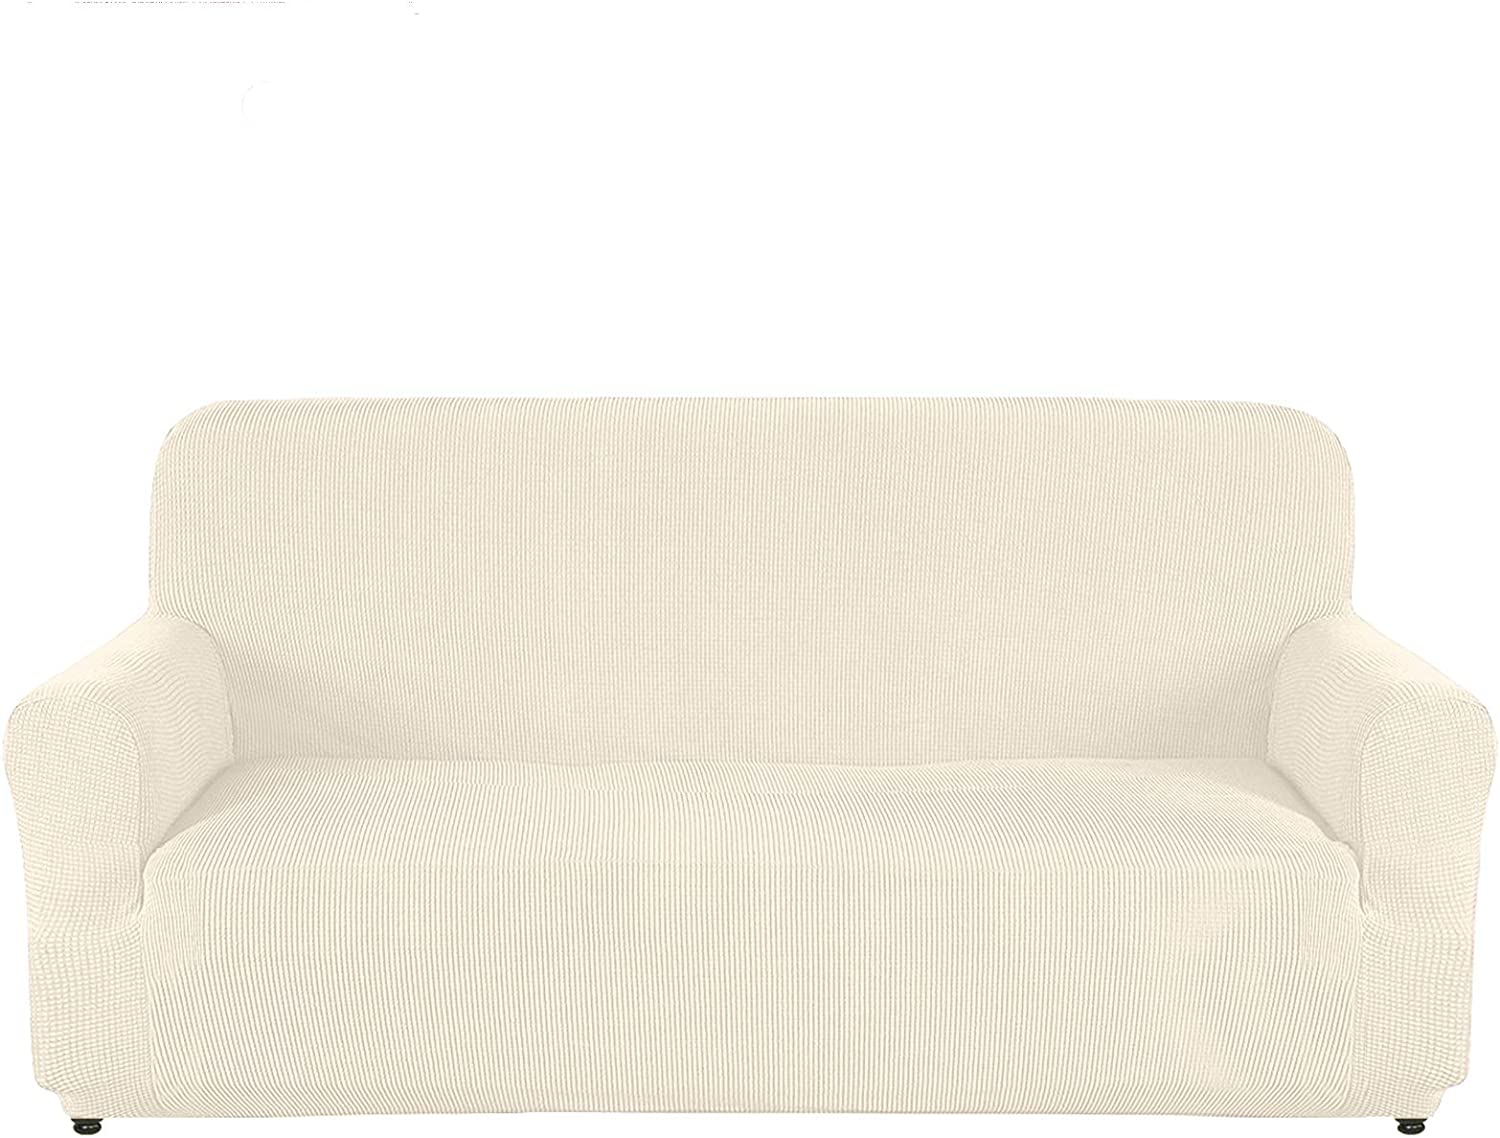 AUJOY Couch Cover Stretch 1-Piece Sofa Slipcover for 3 Cushion Couch Jacquard Fabric Furniture Protector with Anti-Slip Foams (Sofa, Natural)